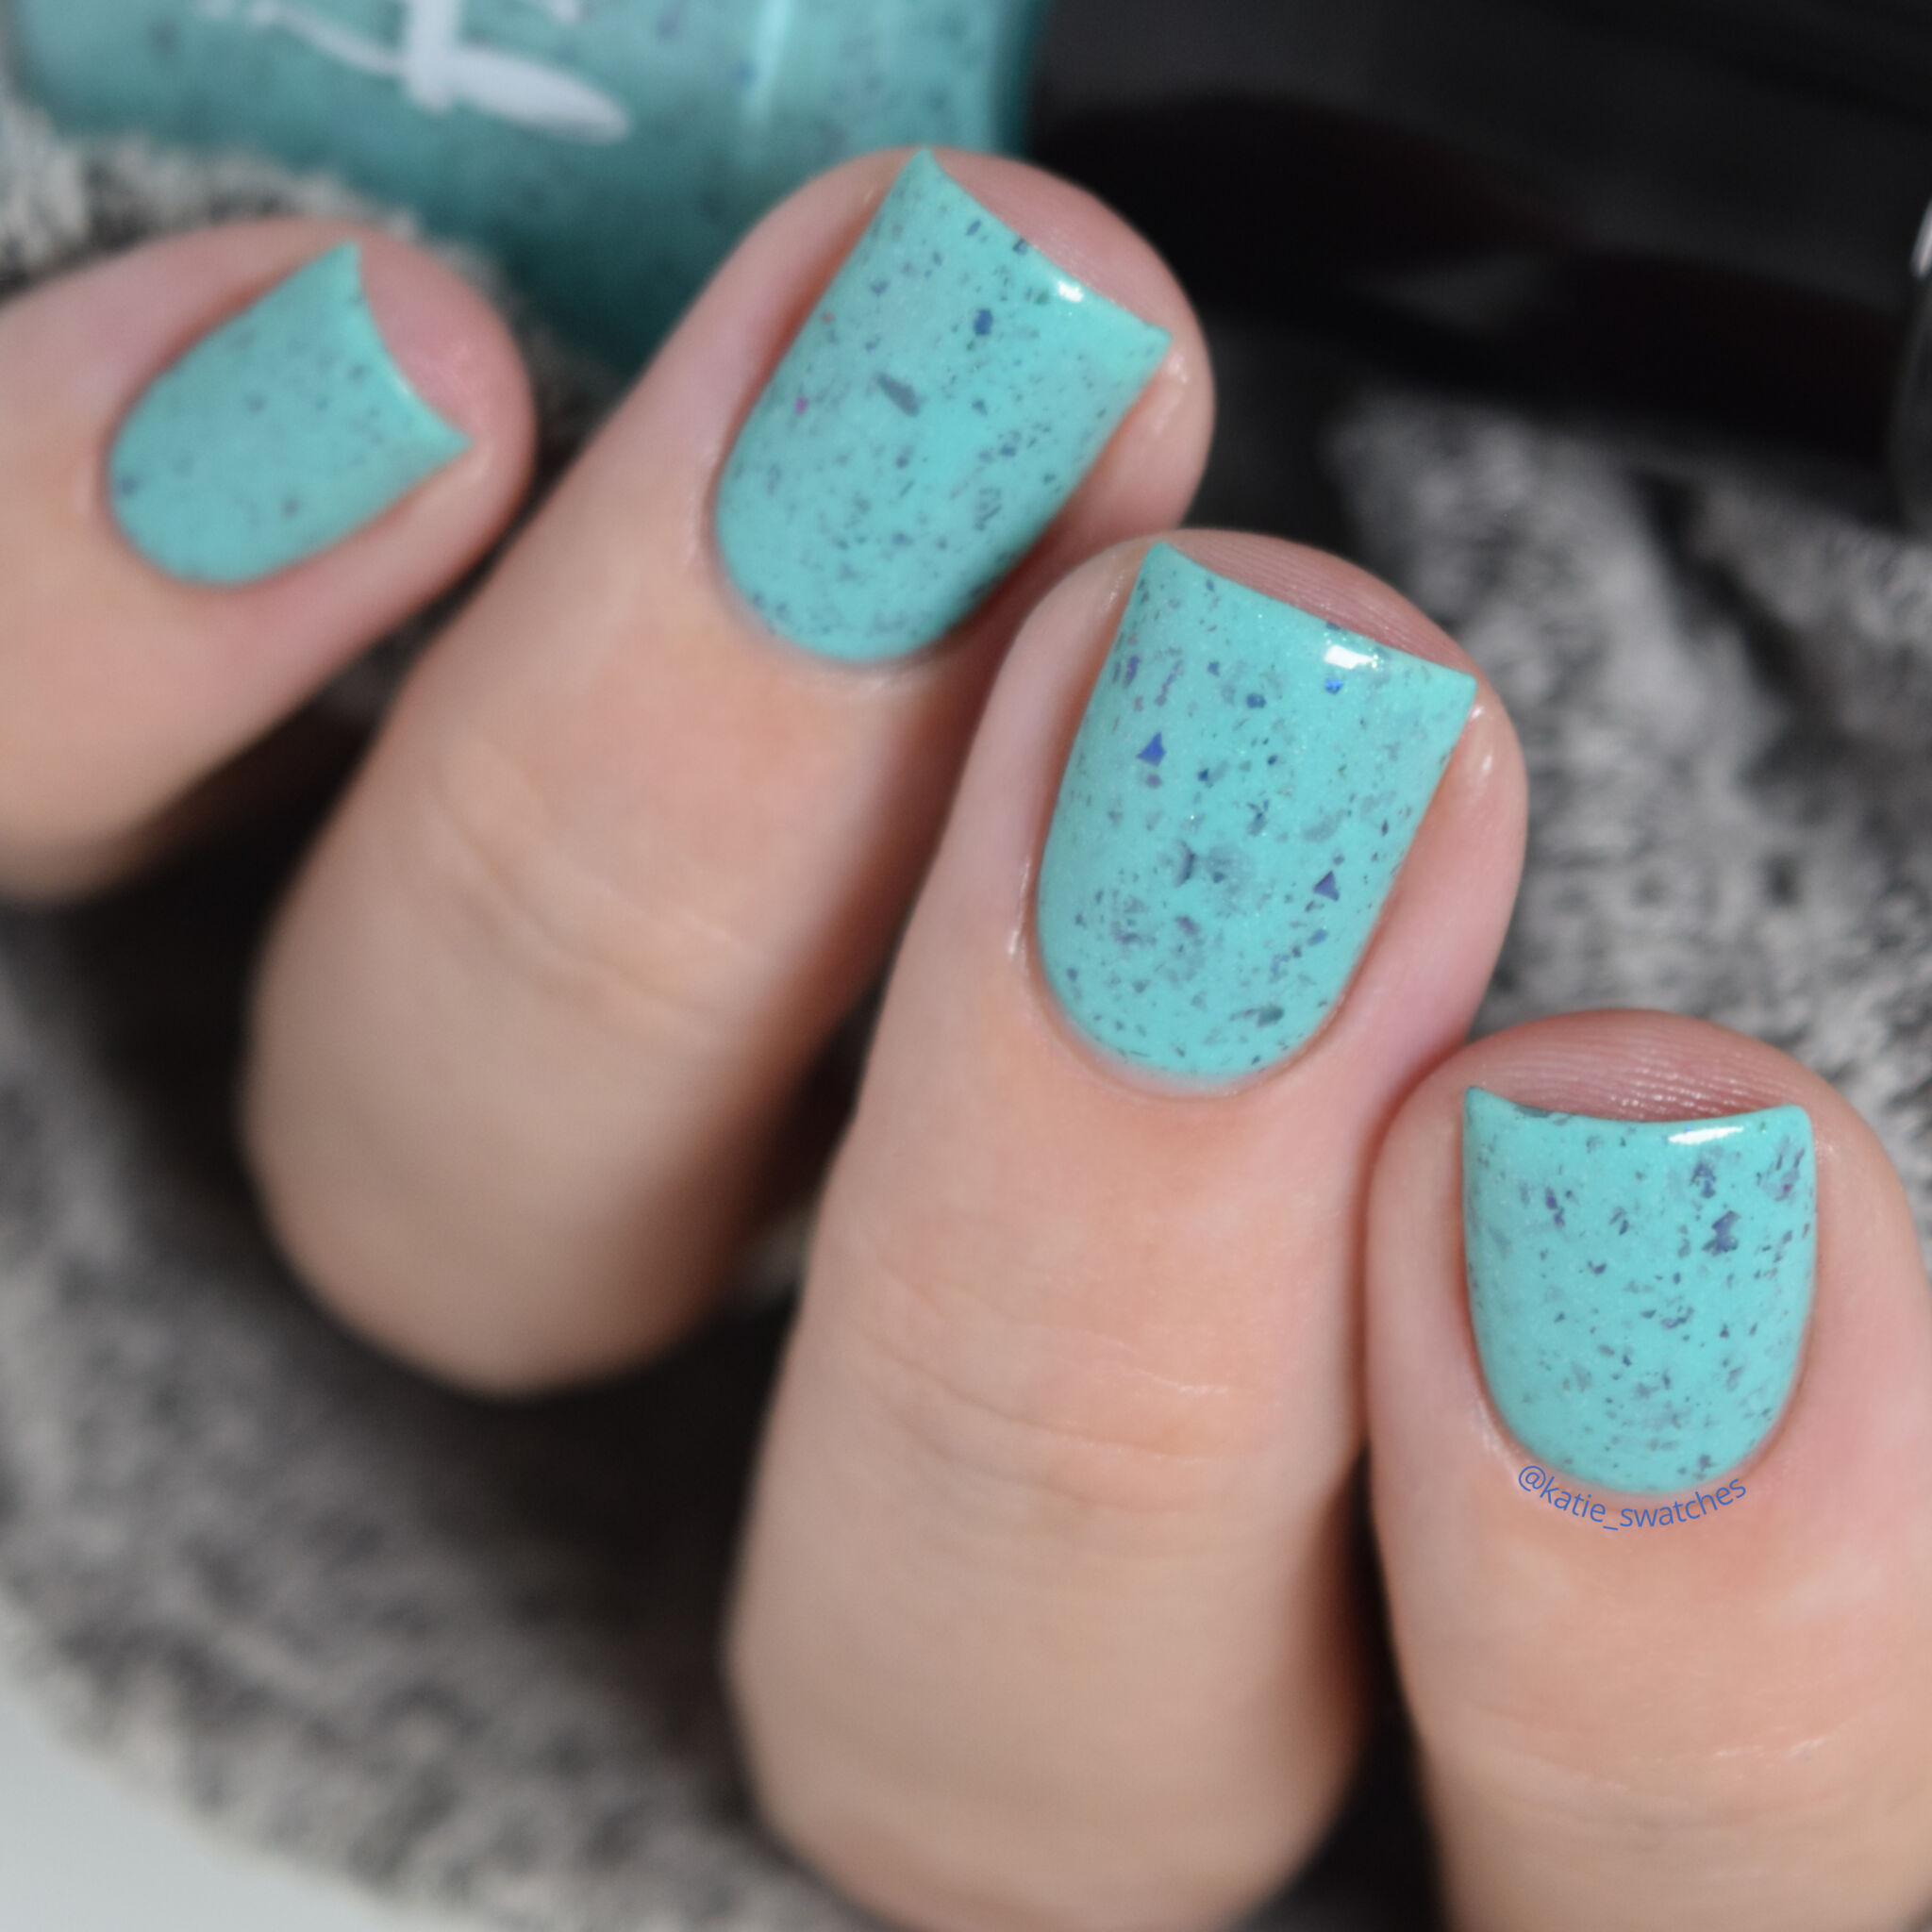 Girly Bits Je Ne Sais Quoi nail polish swatch - Indie Expo Canada IEC VIP Bag 2019 Exclusive